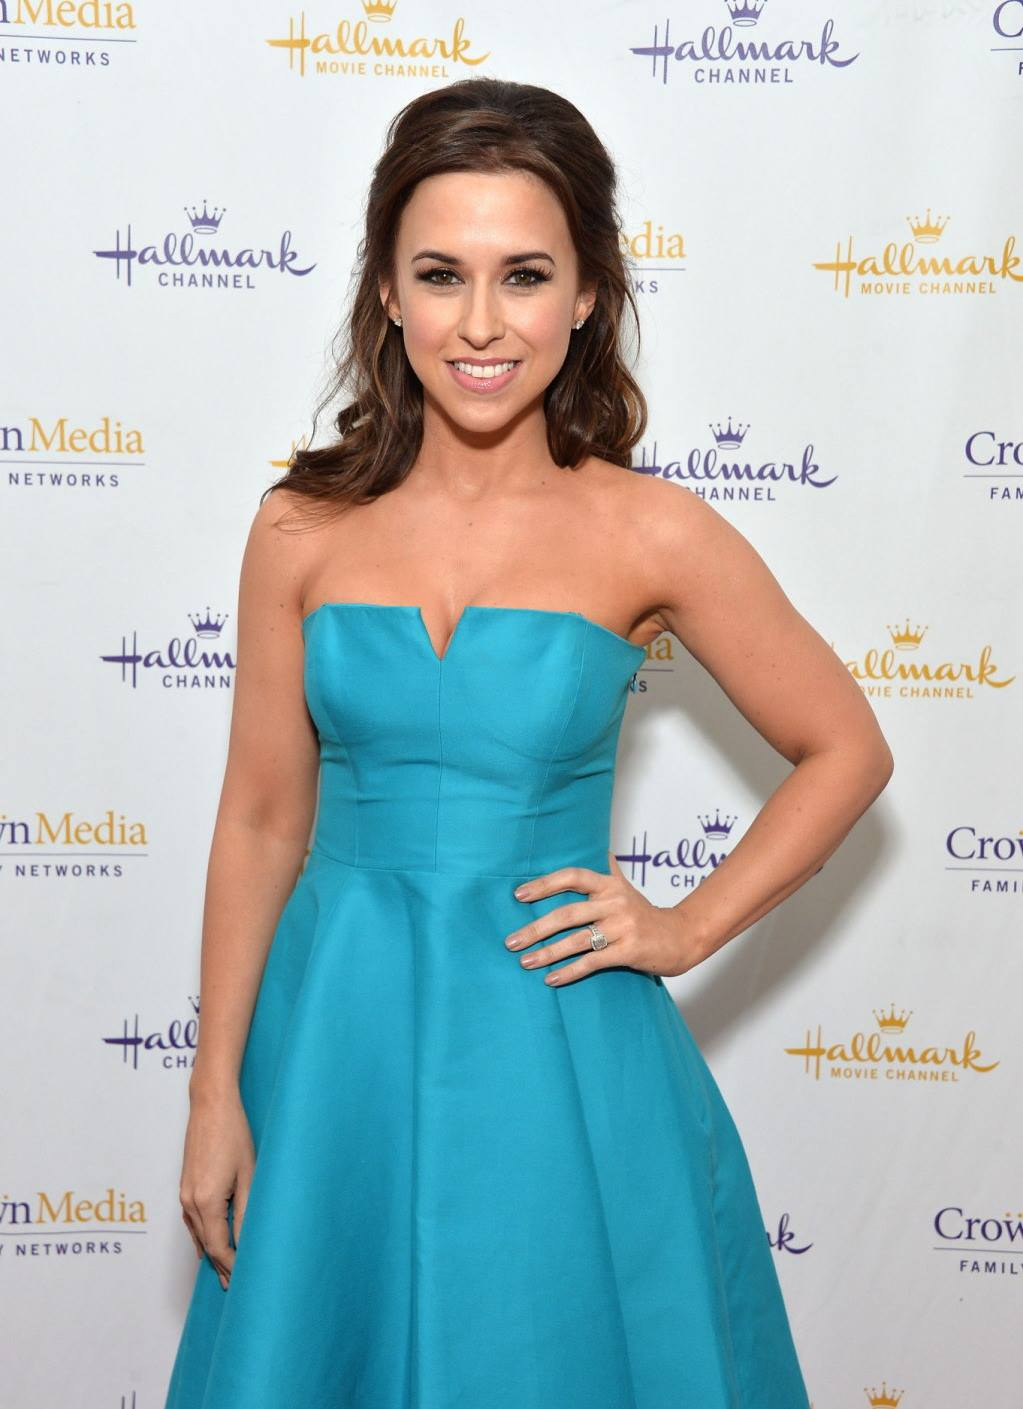 Lacey Chabert at Hallmark Channel Network Event in blue gown